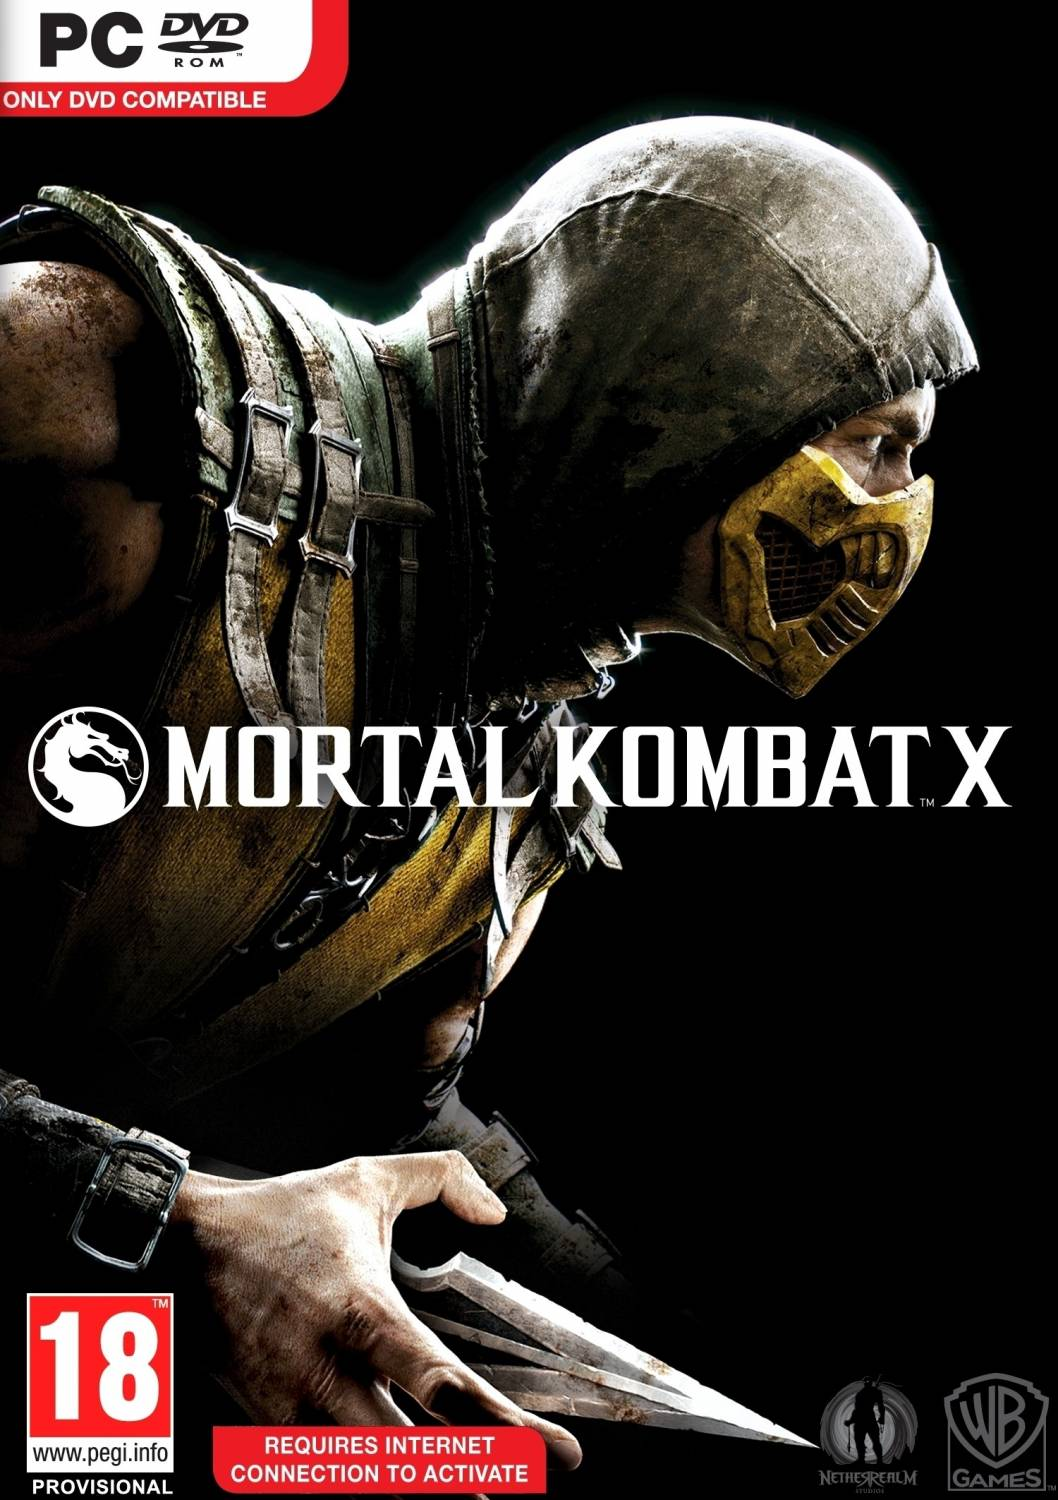 http://torrentsgame.ru/load/games/action/mortal_kombat_x/2-1-0-36